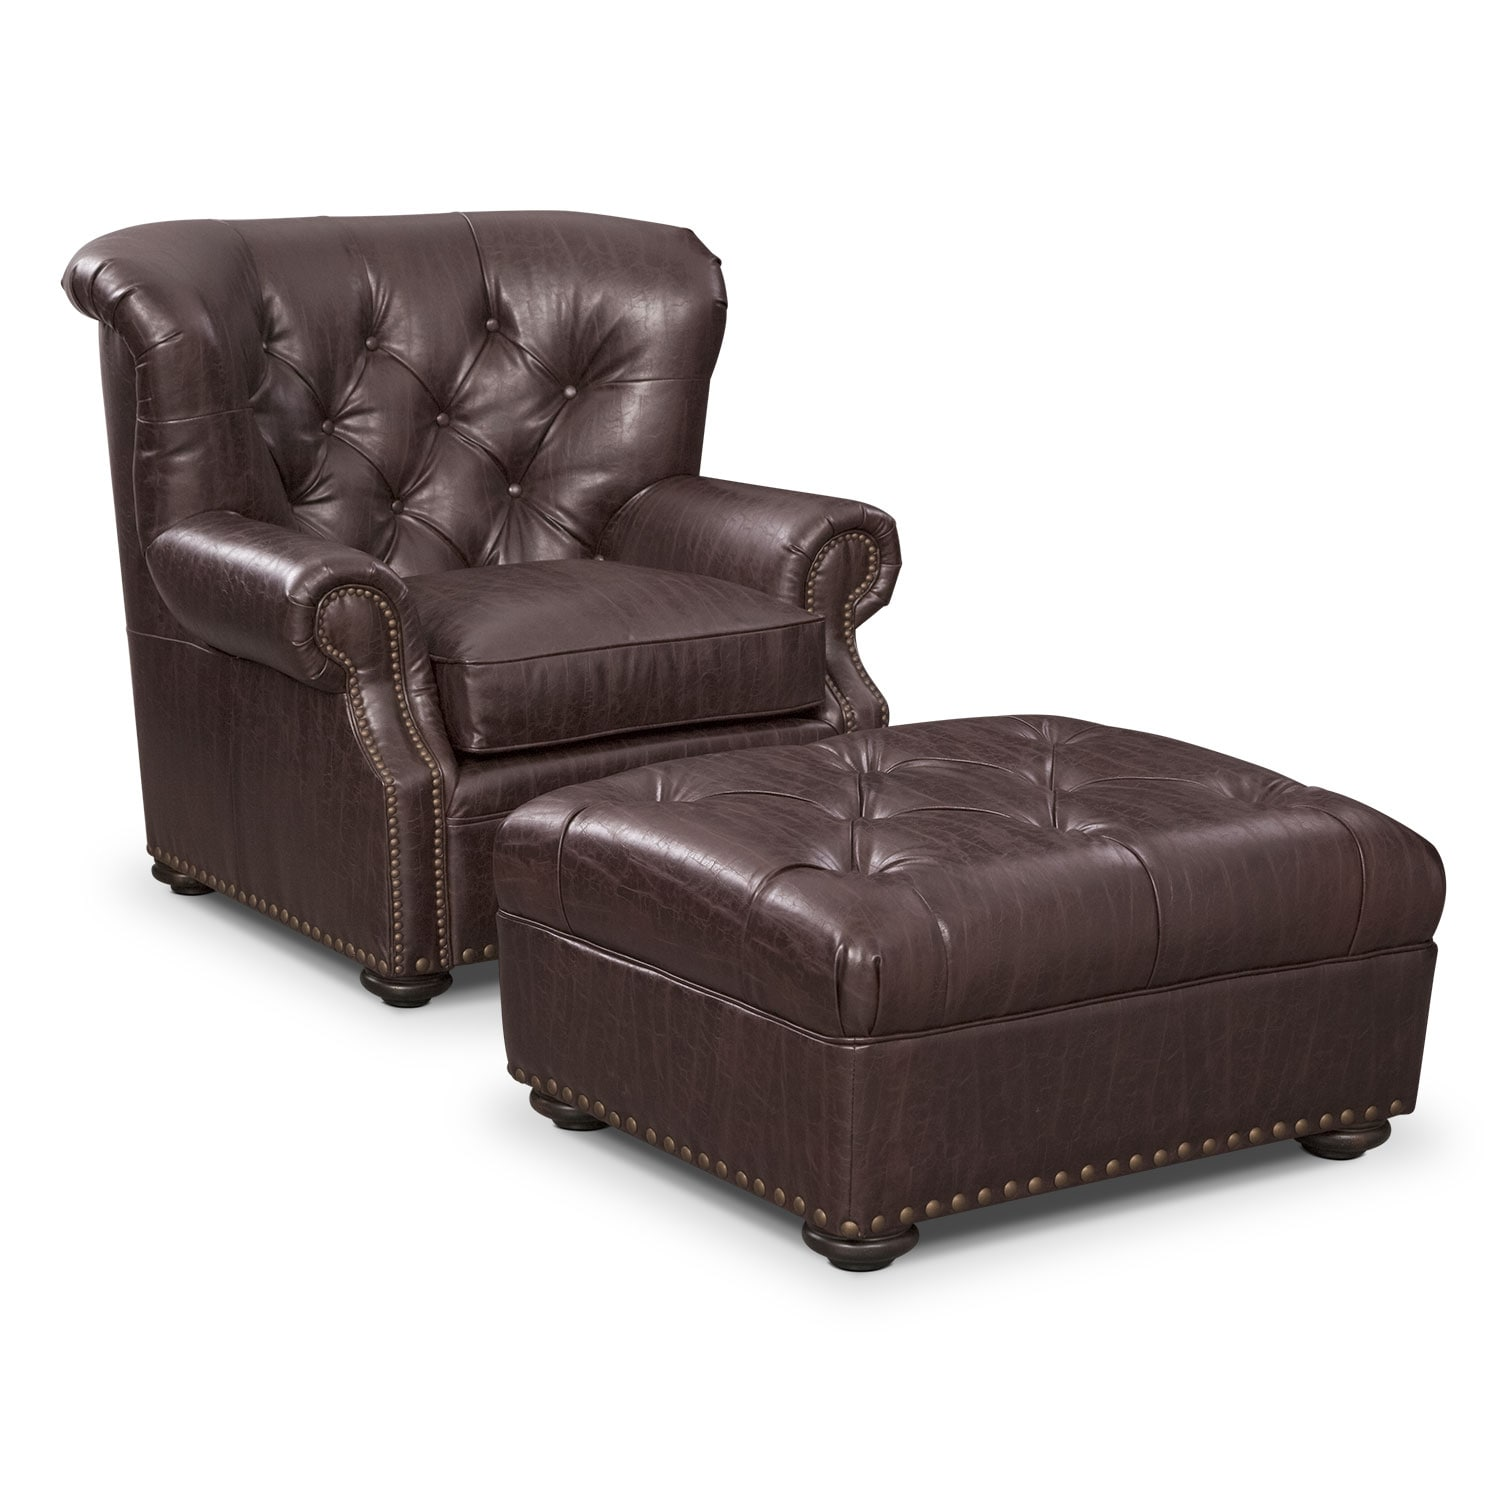 Living Room Furniture - Cabot Chair and Ottoman